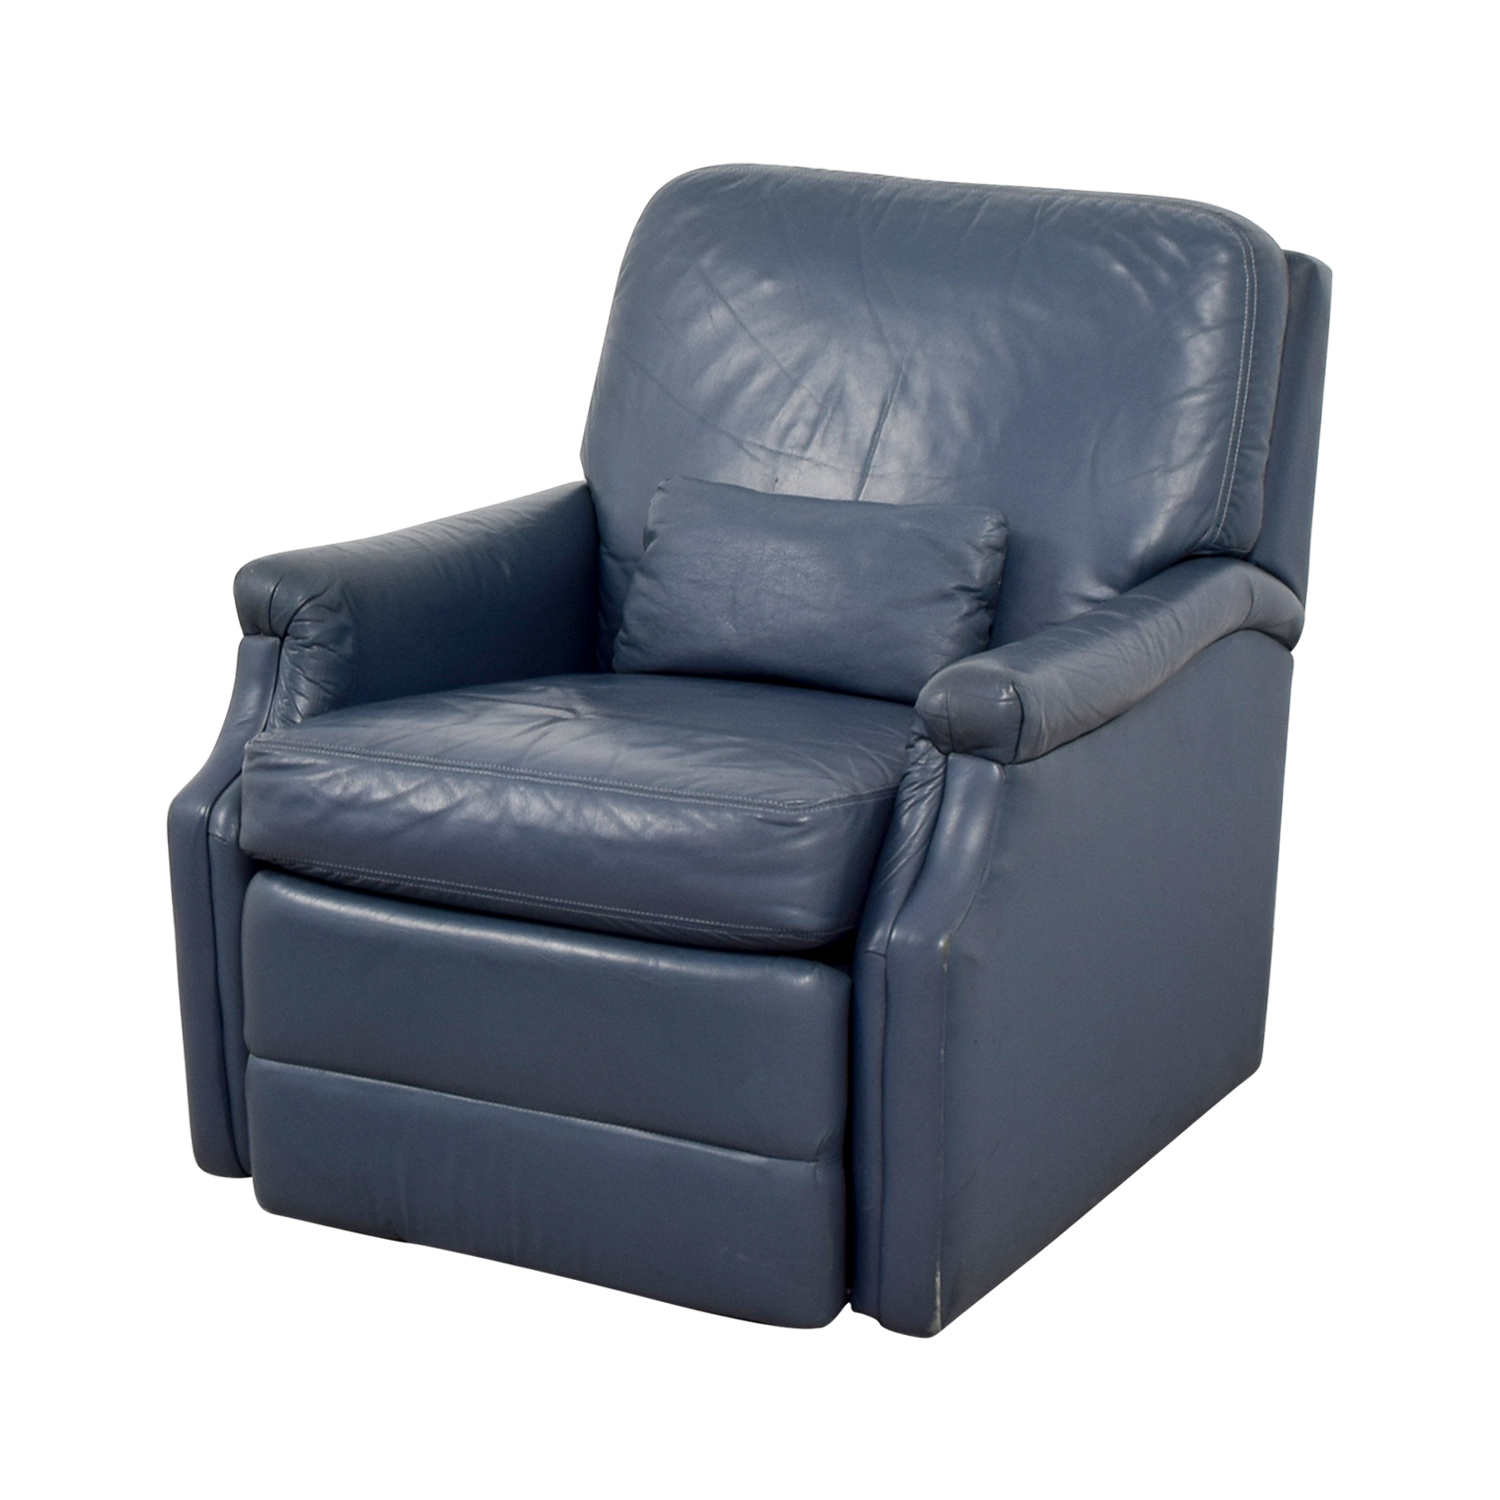 ... buy Barcalounger Manual Reclining Arm Chair Barcalounger ...  sc 1 st  Furnishare & 34% OFF - Barcalounger Barcalounger Manual Reclining Arm Chair ... islam-shia.org